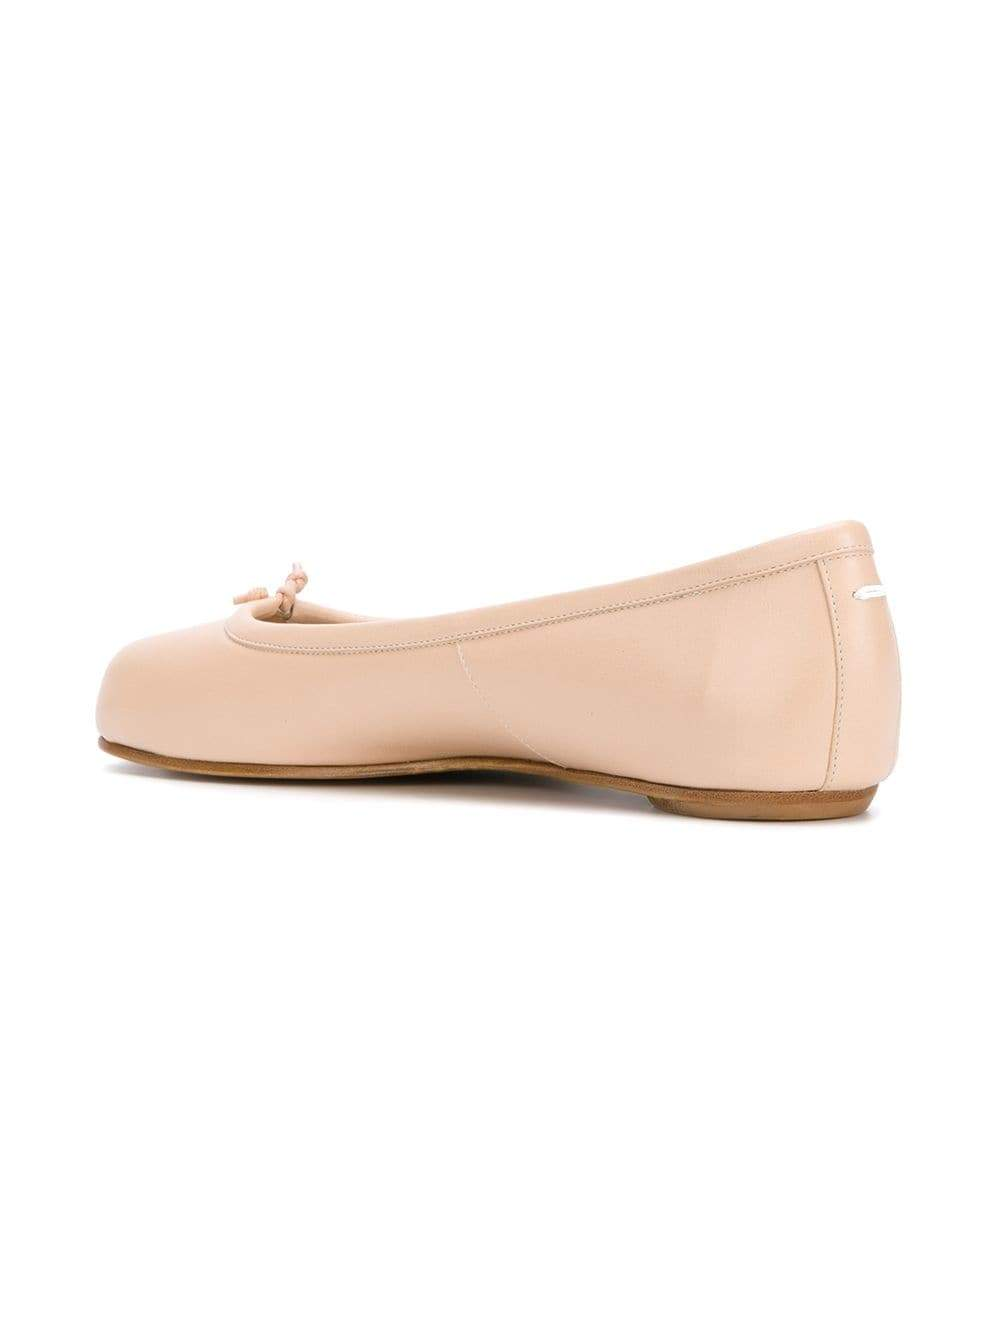 Beige Tabi Flat Shoes